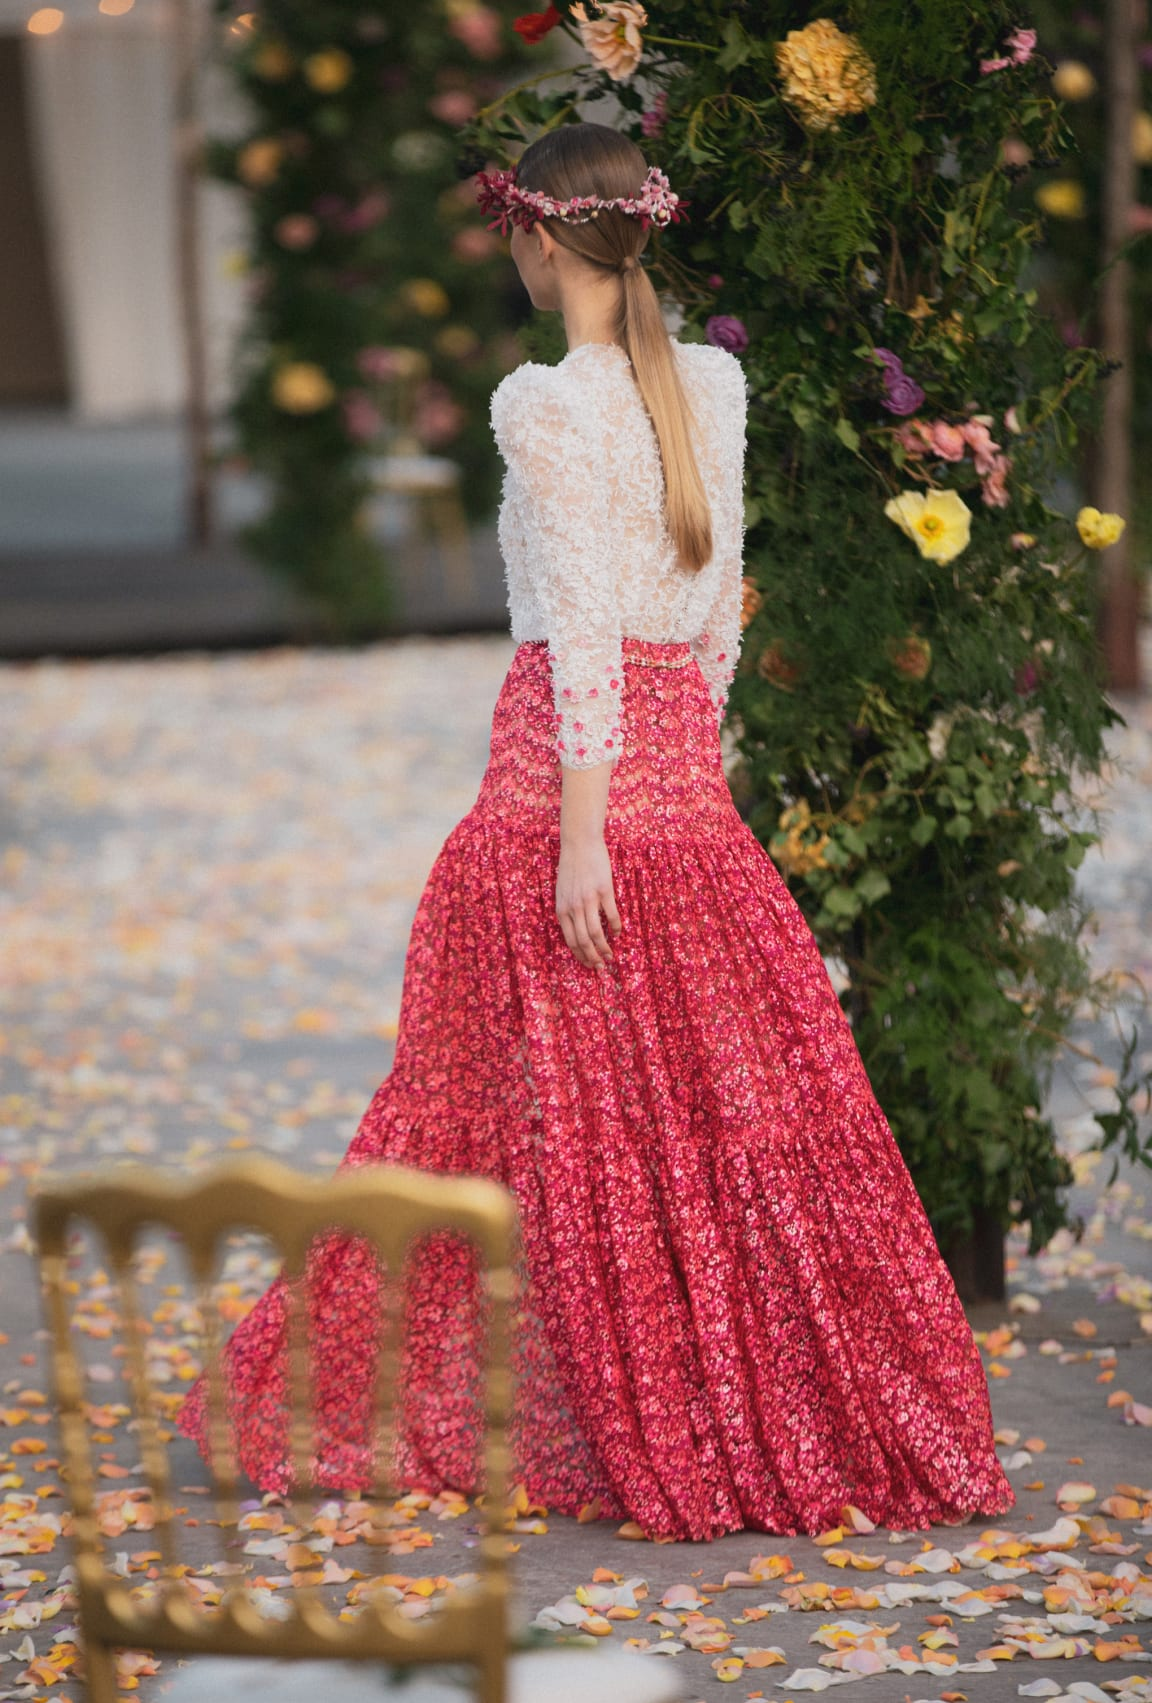 zoom - View 2 - Look 1 - Spring-Summer 2021 Haute Couture - see full sized version